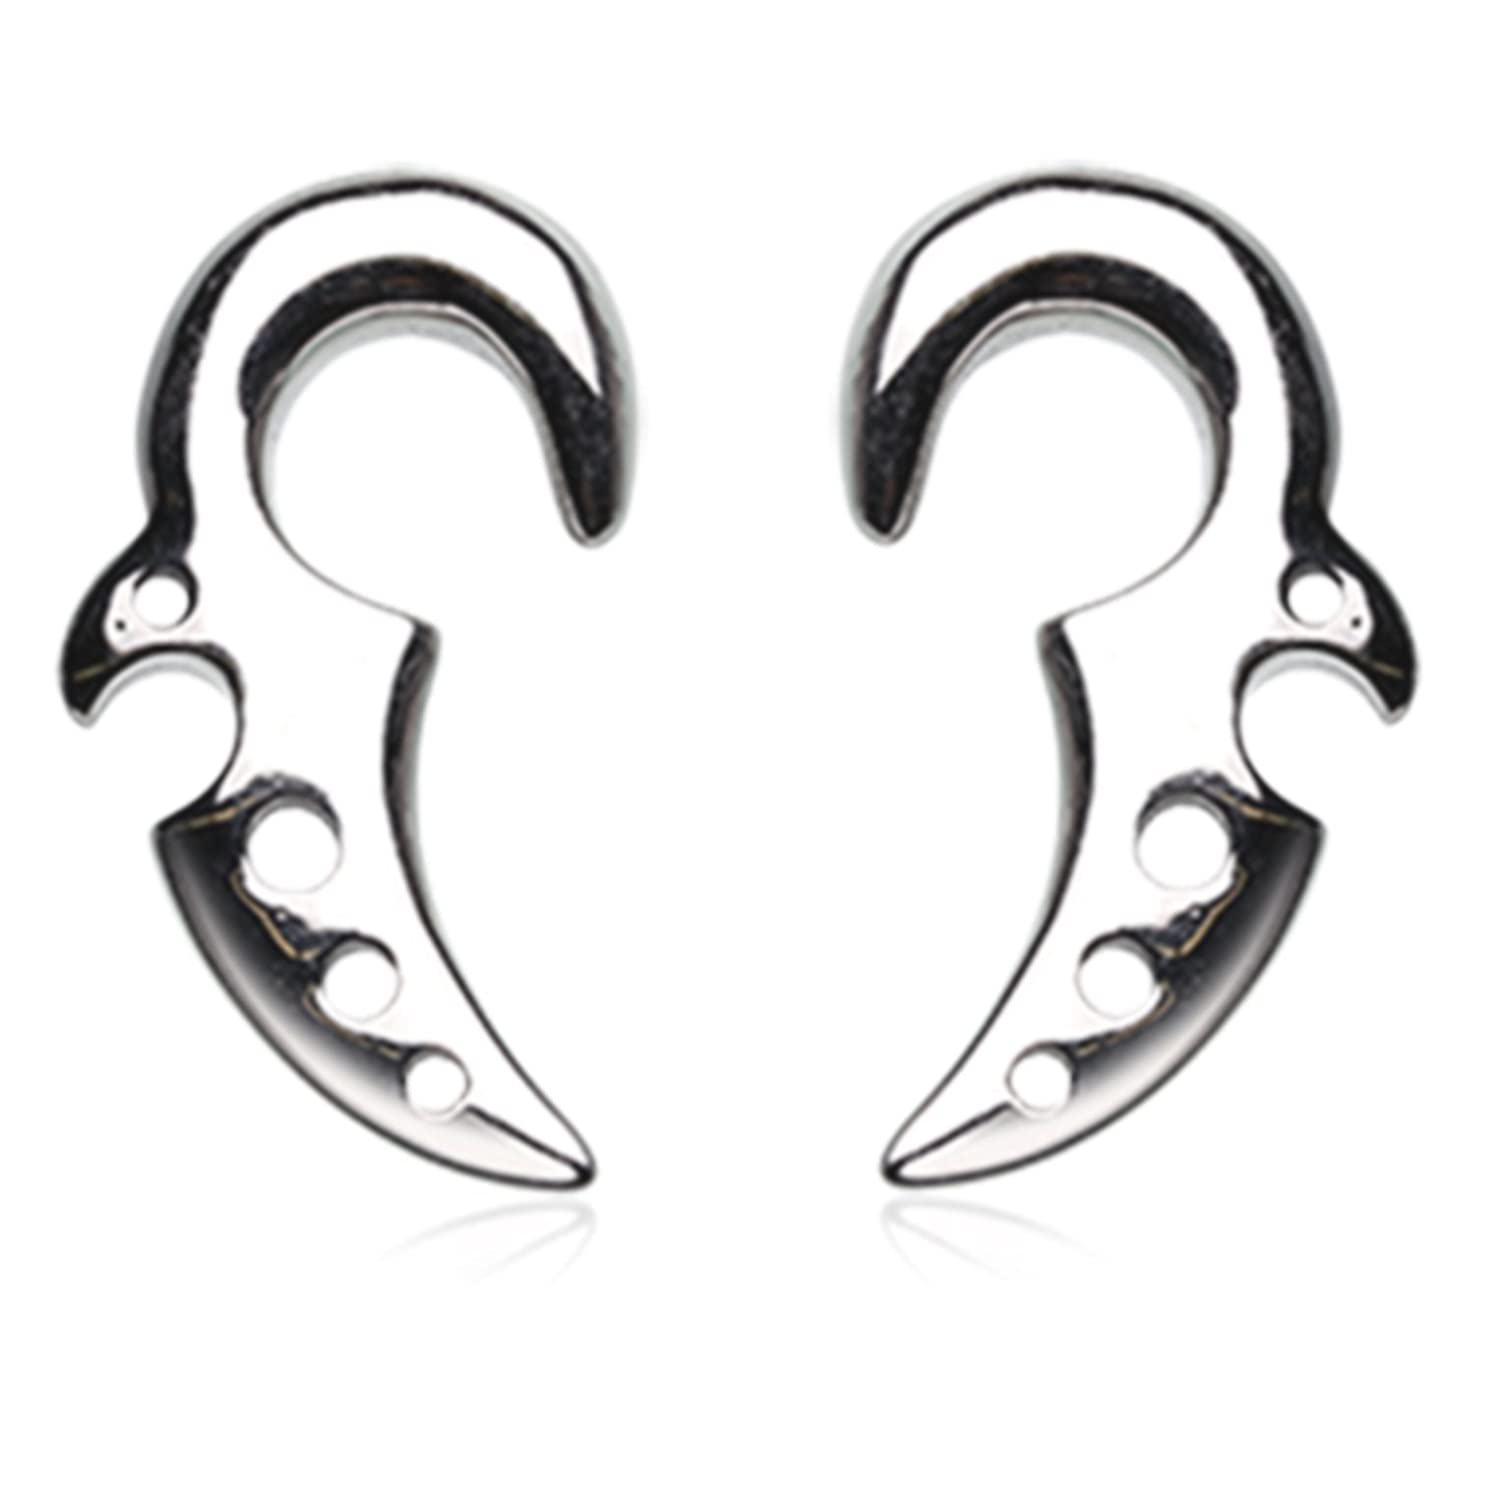 BYB Plugs Pair of Fang Hanger Stainless Steel Ear Stretching Tapers